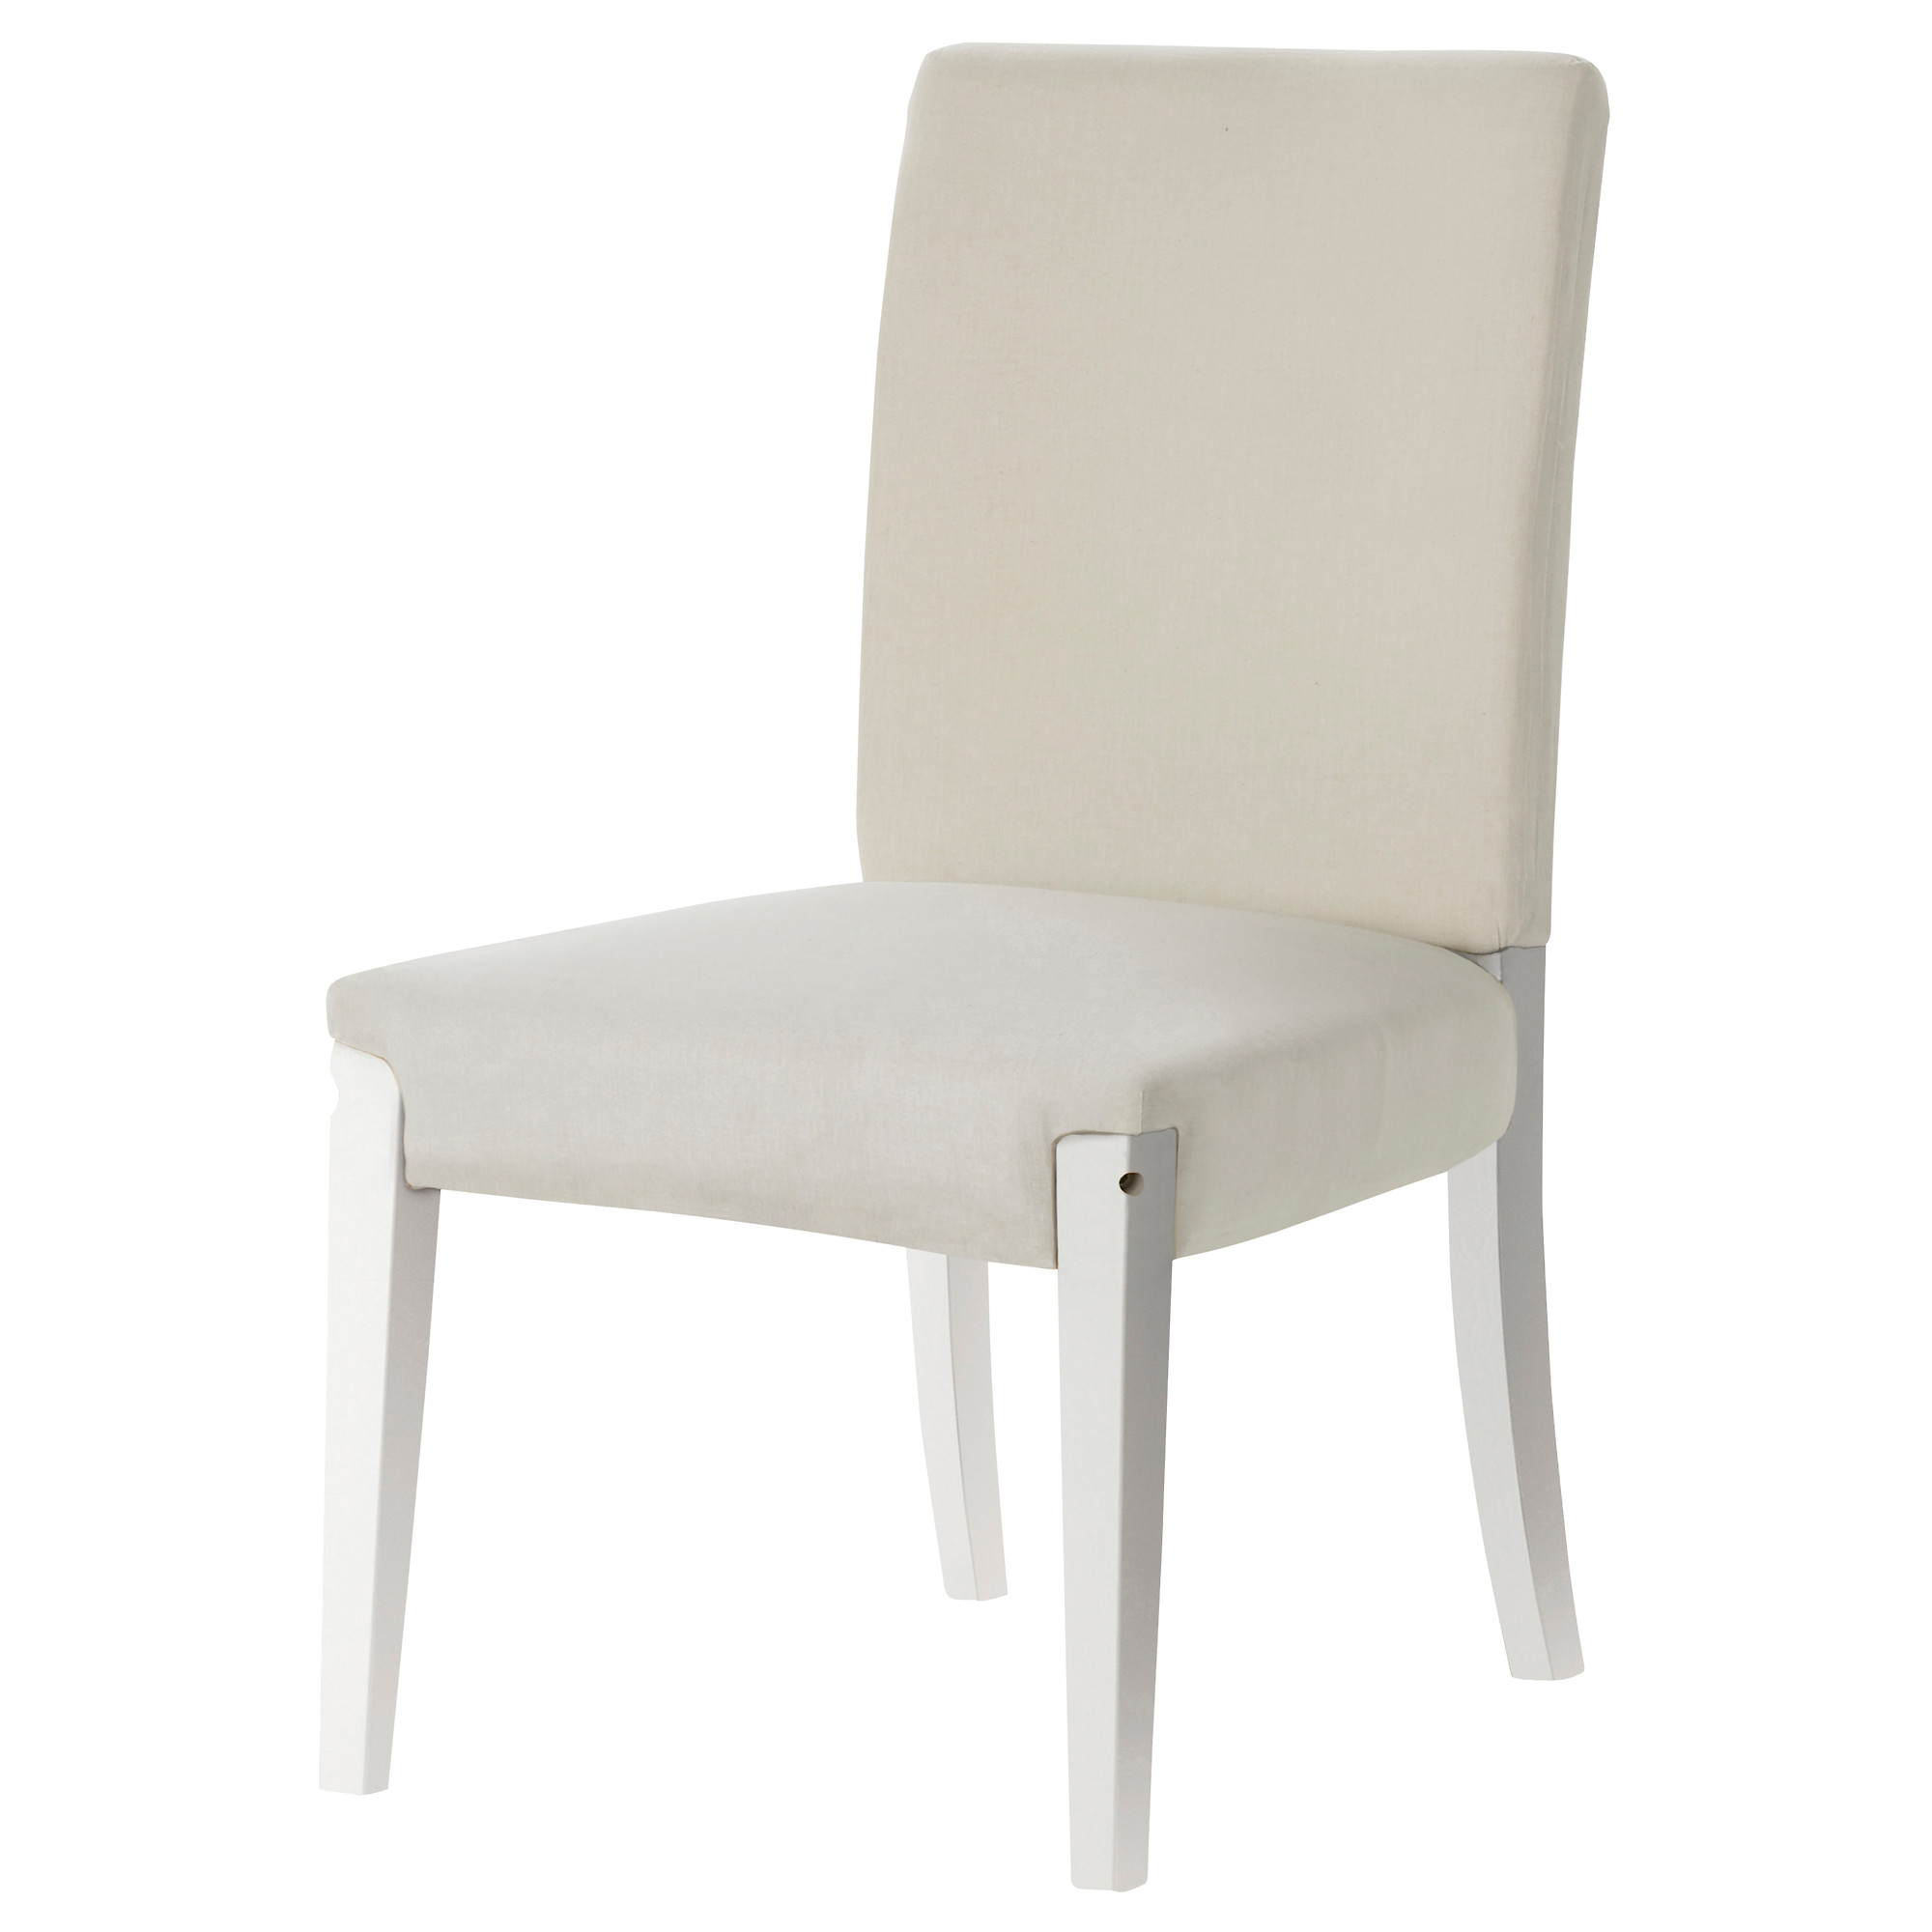 White upholstered dining chair homesfeed for White chair